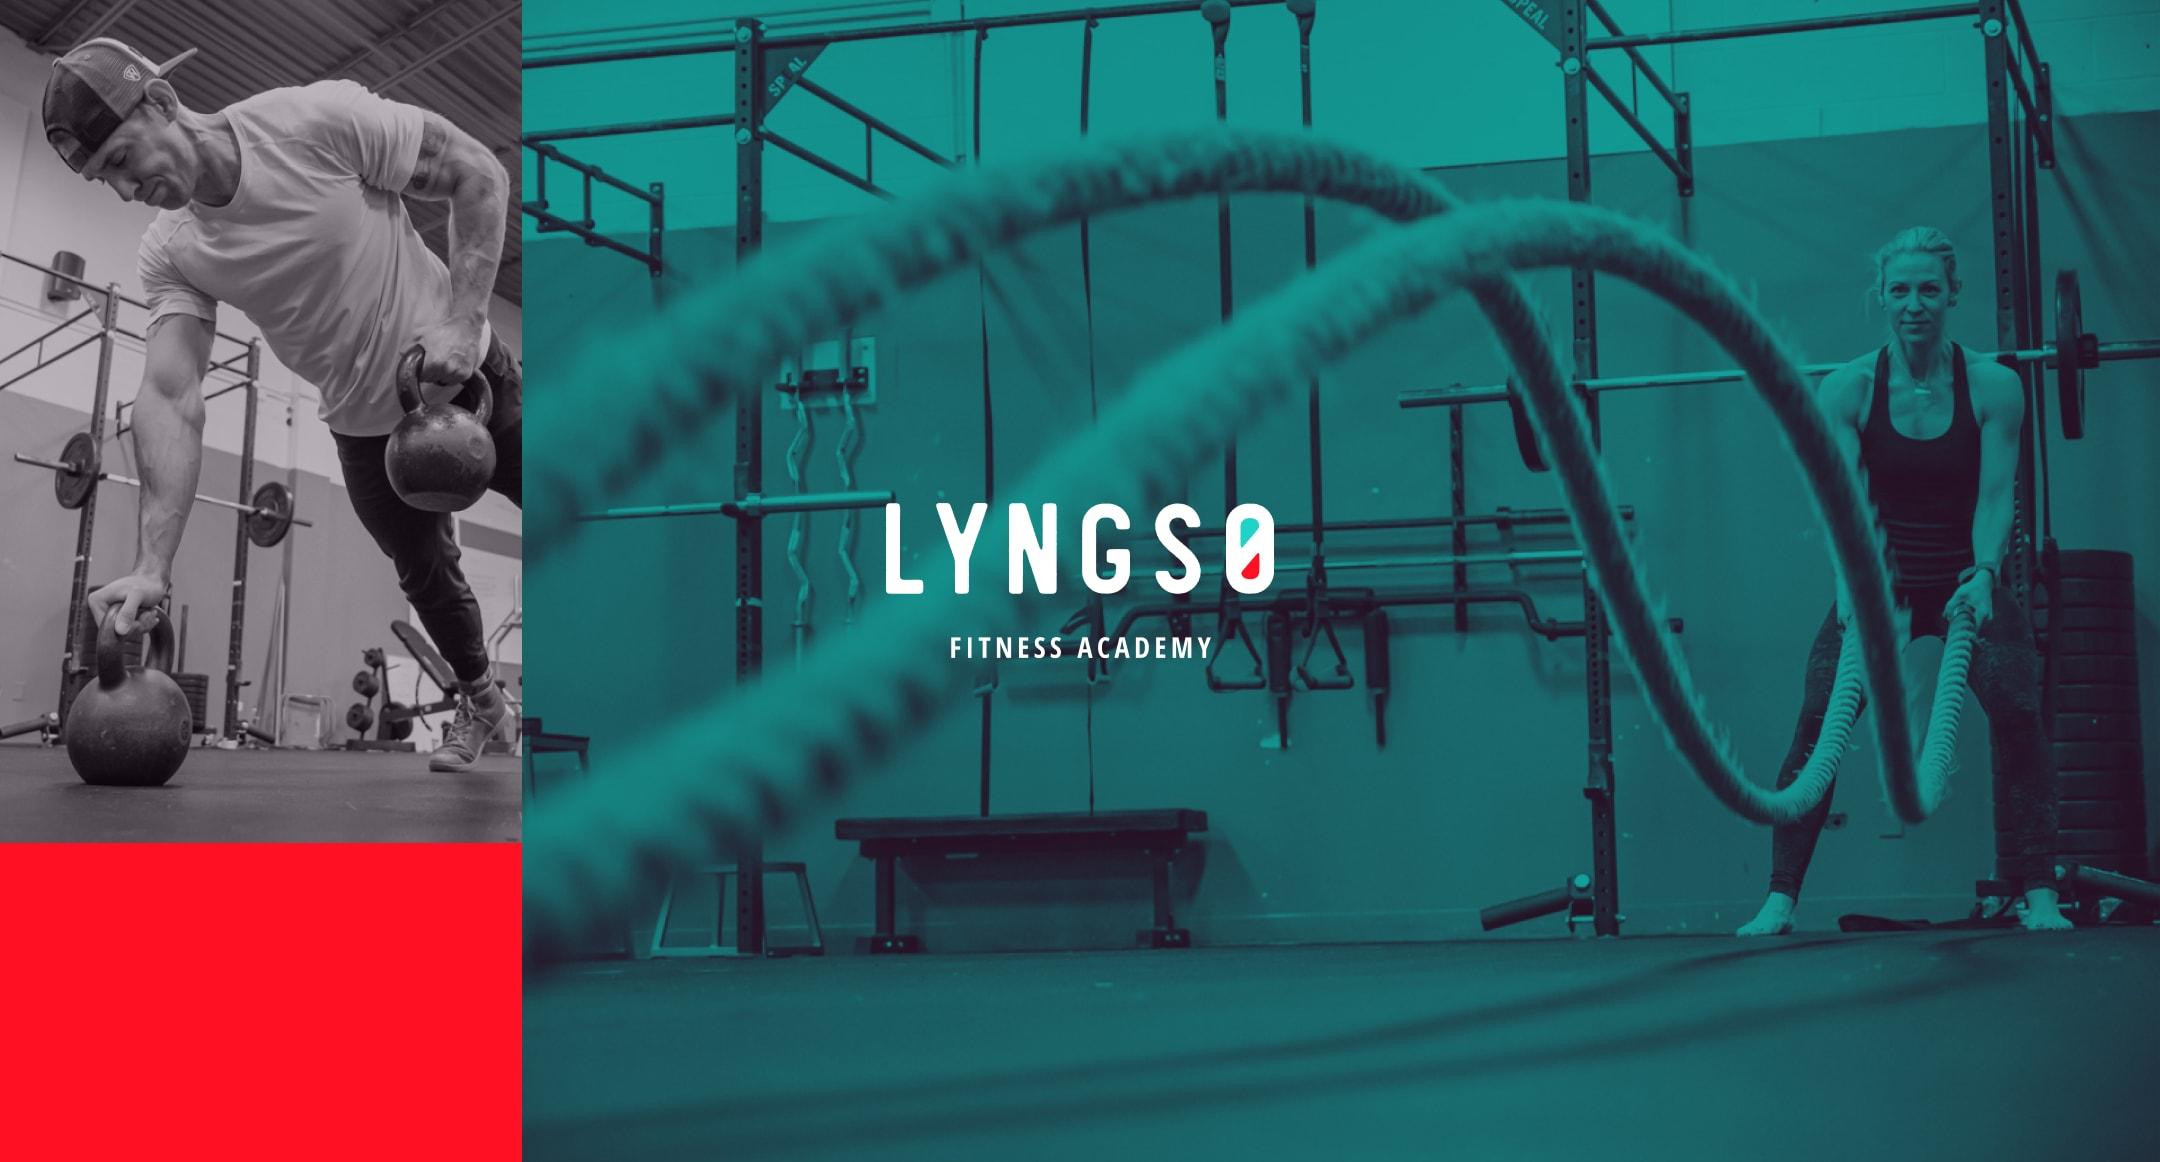 Lyngso Fitness Academy